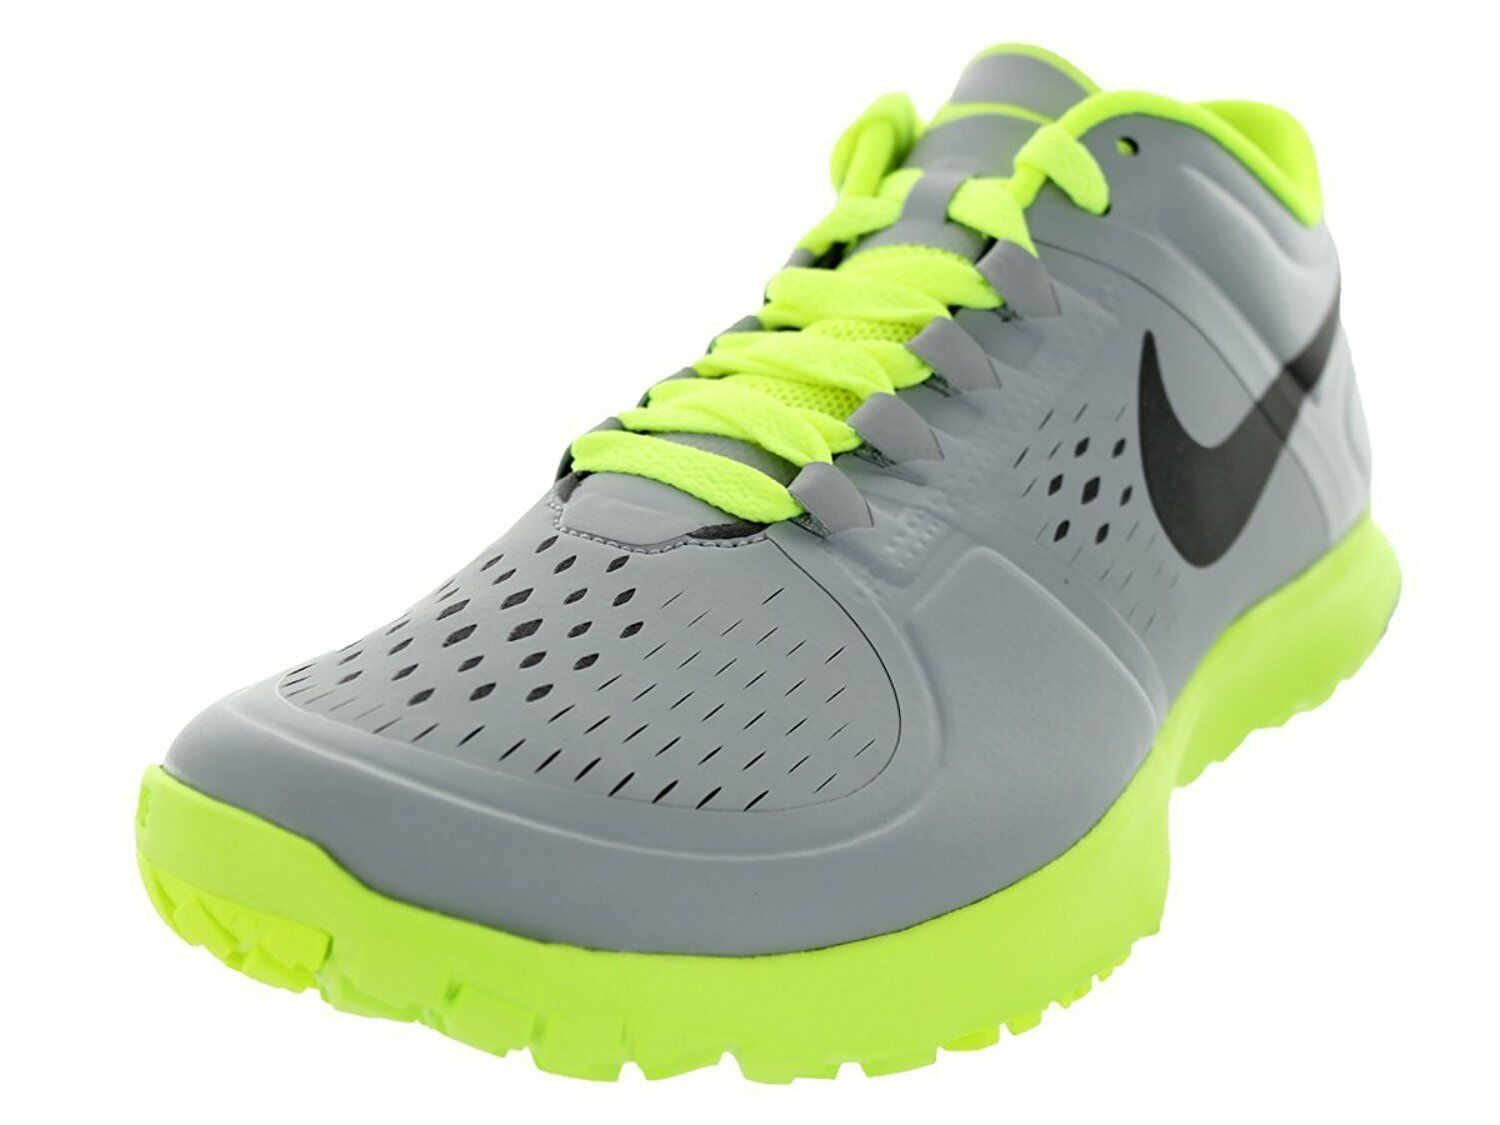 Men's Nike FS Lite Trainer Training Shoes, 615972 012 Size 11 Wolf Grey/Volt